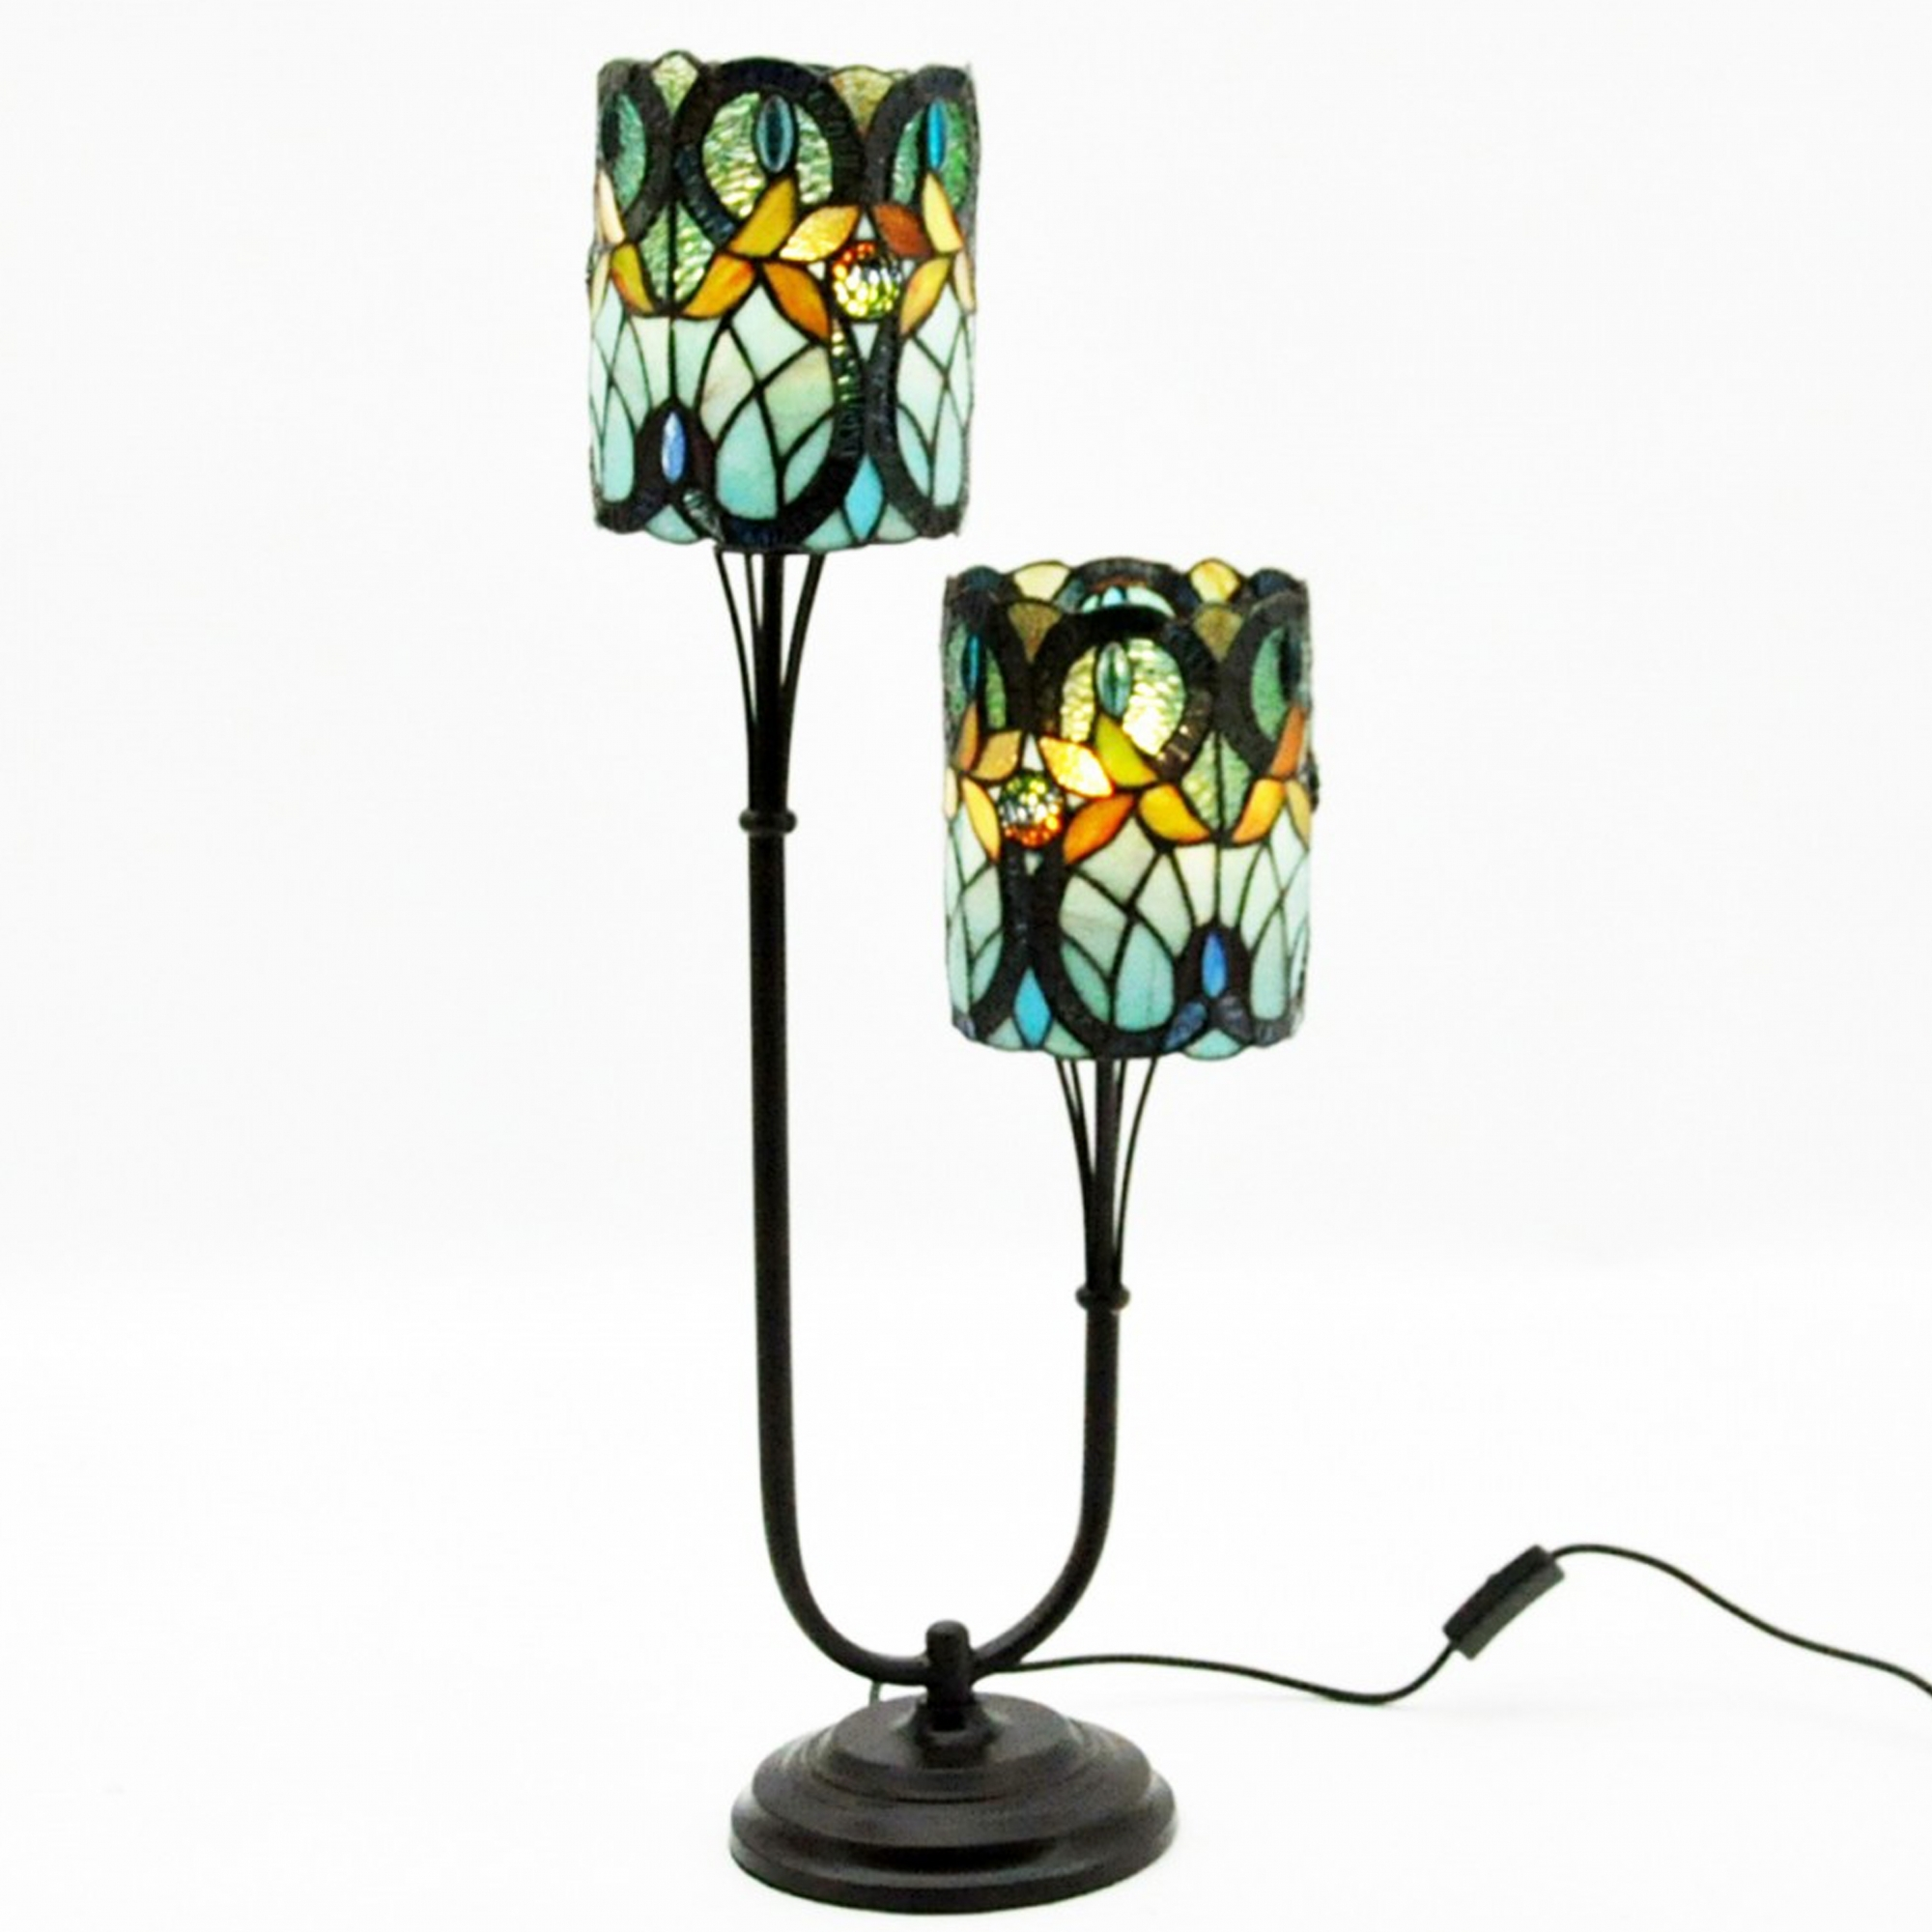 Tiffany Table Lamp Accessories